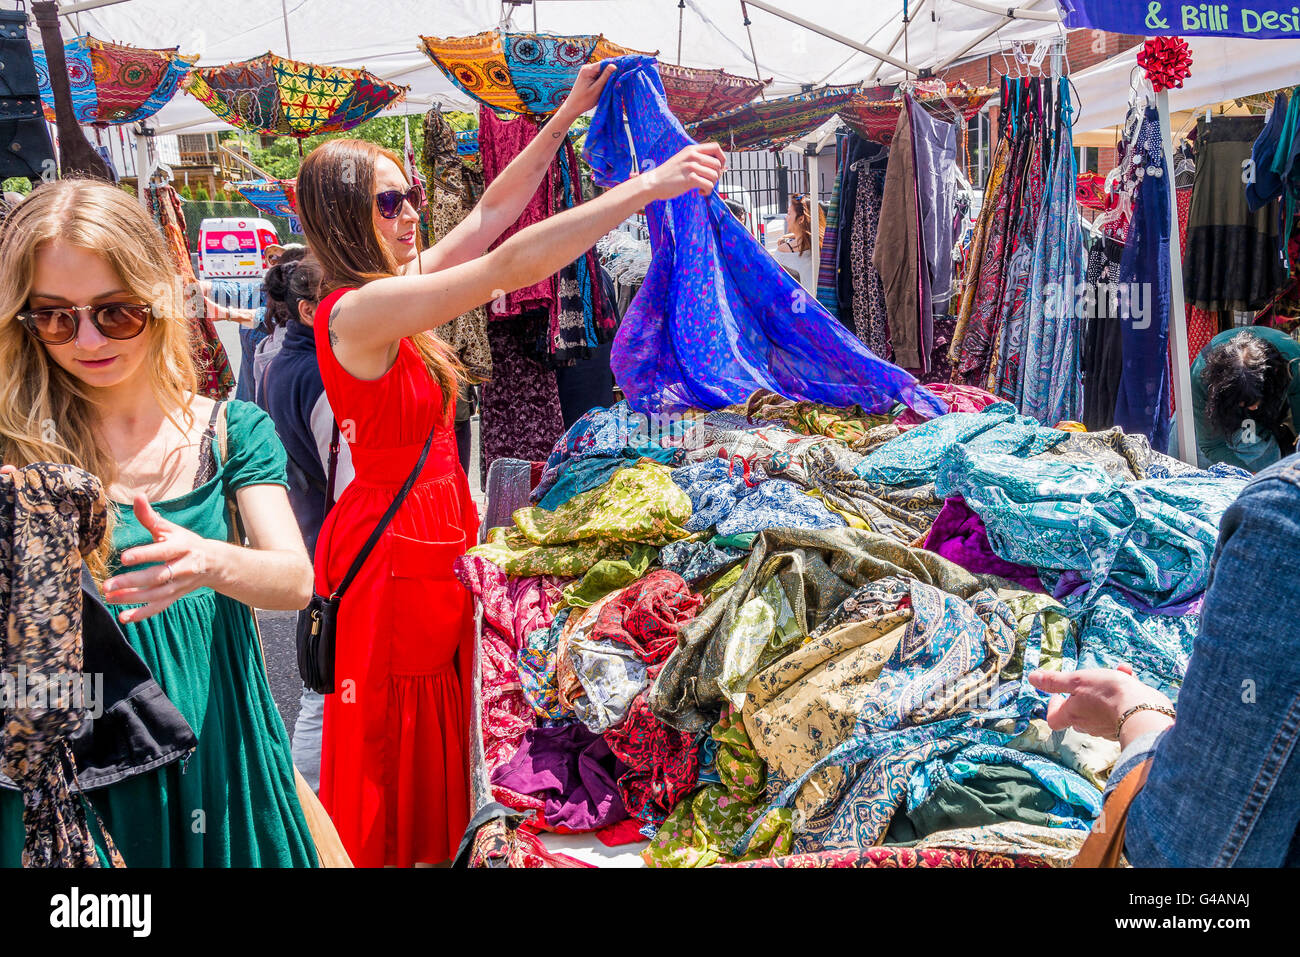 Women peruse clothes in outdoor Market stall, - Stock Image